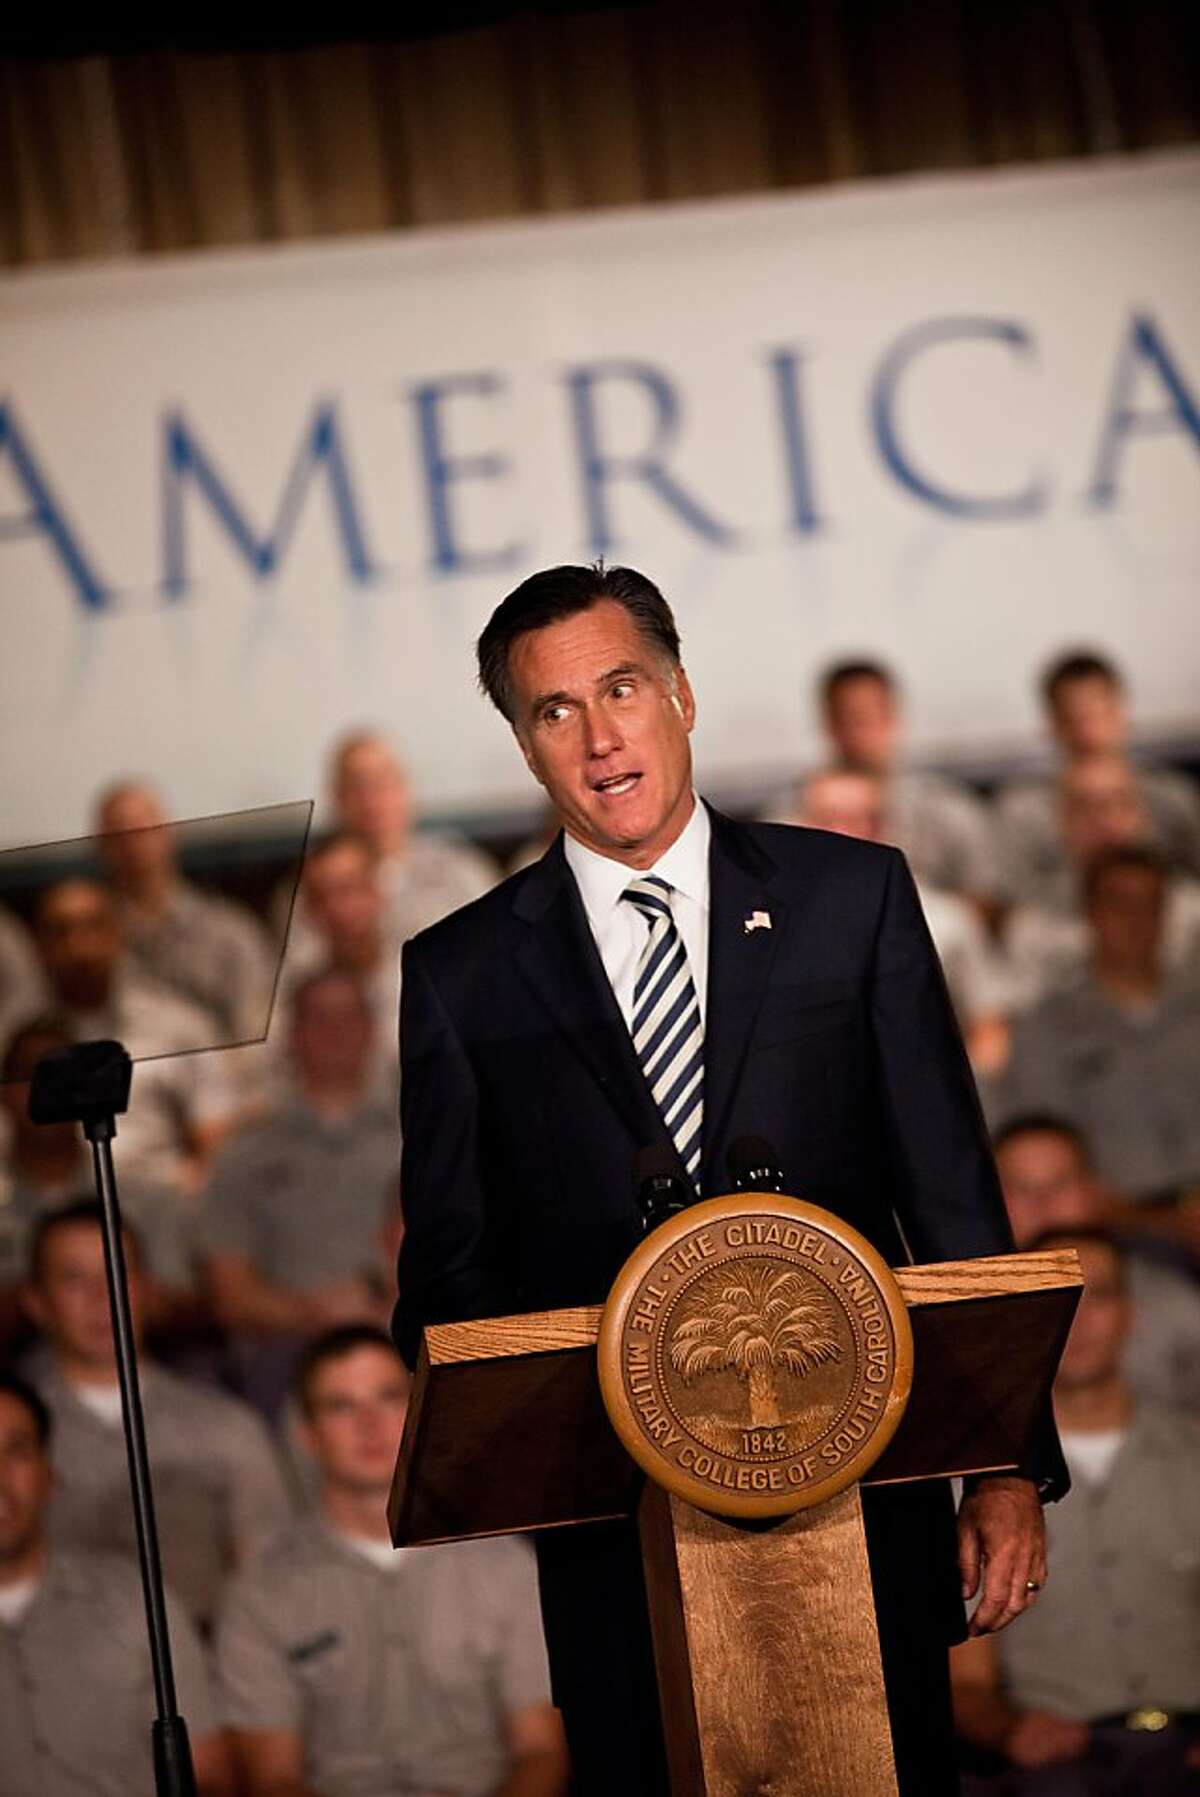 CHARLESTON, SC - OCTOBER 07: Former Massachusetts Gov. and Republican presidential candidate Mitt Romney gives a foreign policy address to cadets at the Citadel on October 7, 2011 in Charleston, South Carolina. Romney spoke about the war in Afghanistan and other military topics. (Photo by Richard Ellis/Getty Images)